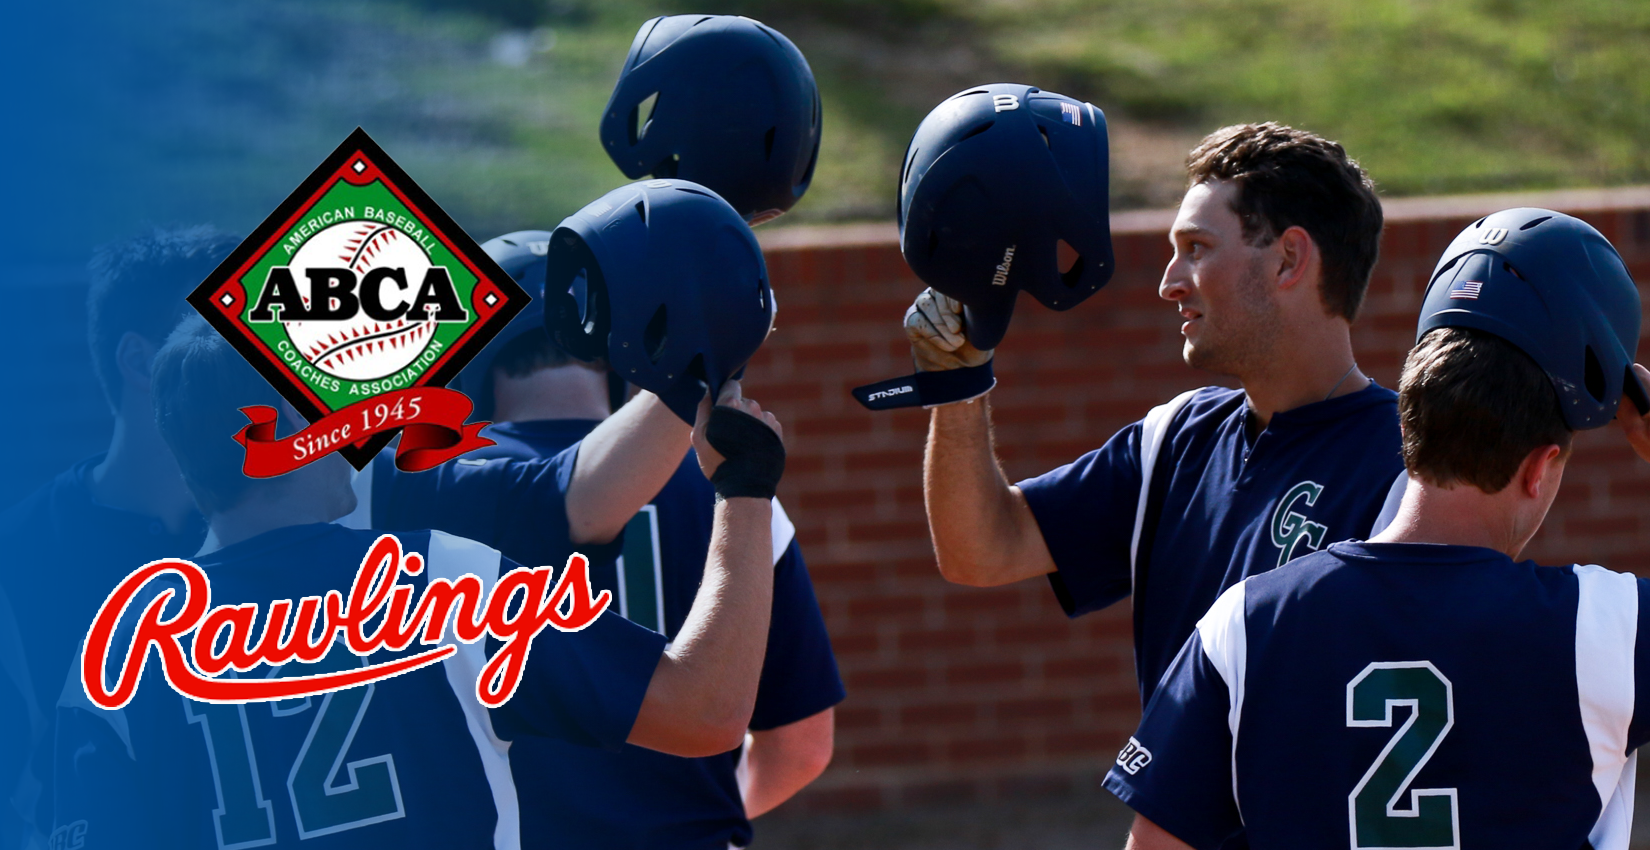 Bobcat Baseball's Cook Earns ABCA/Rawlings All-America First Team